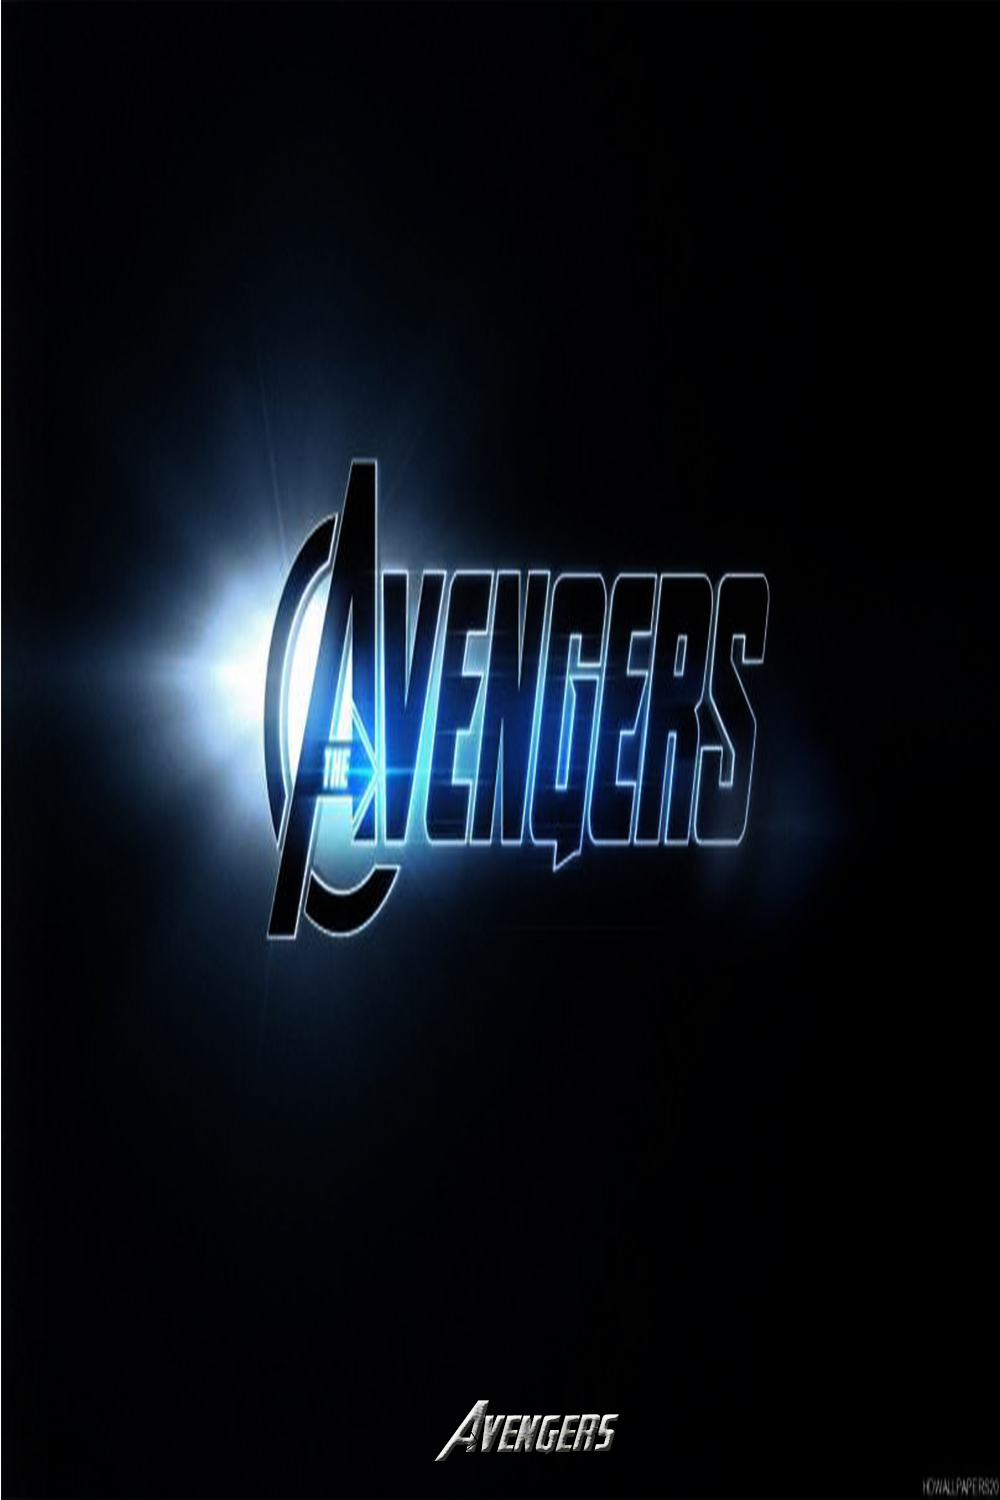 Avengers Wallpaper 4k Hd Download In 2020 Avengers Wallpaper